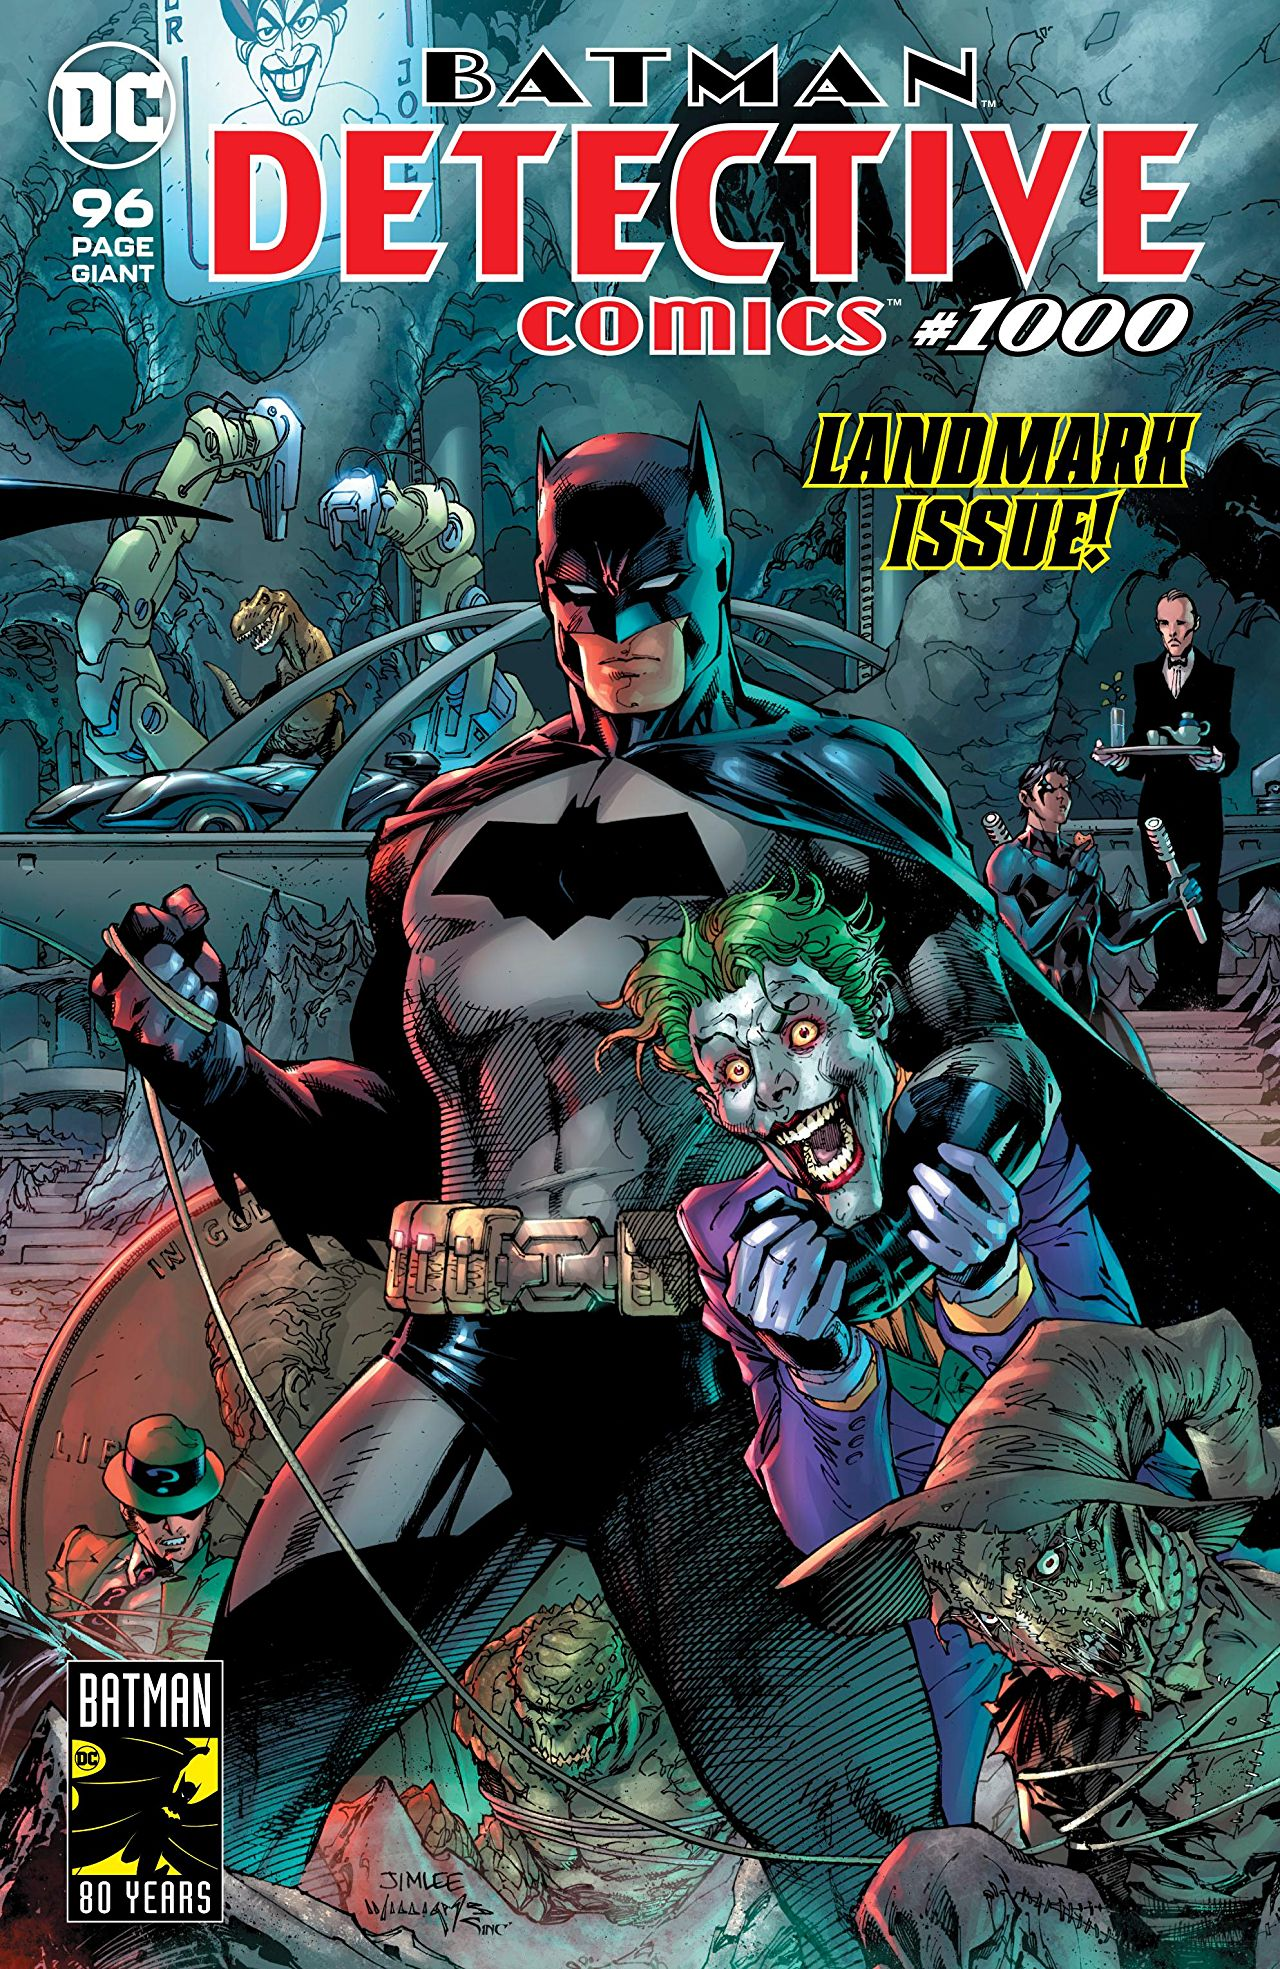 ANOTHER JIM LEE COVER